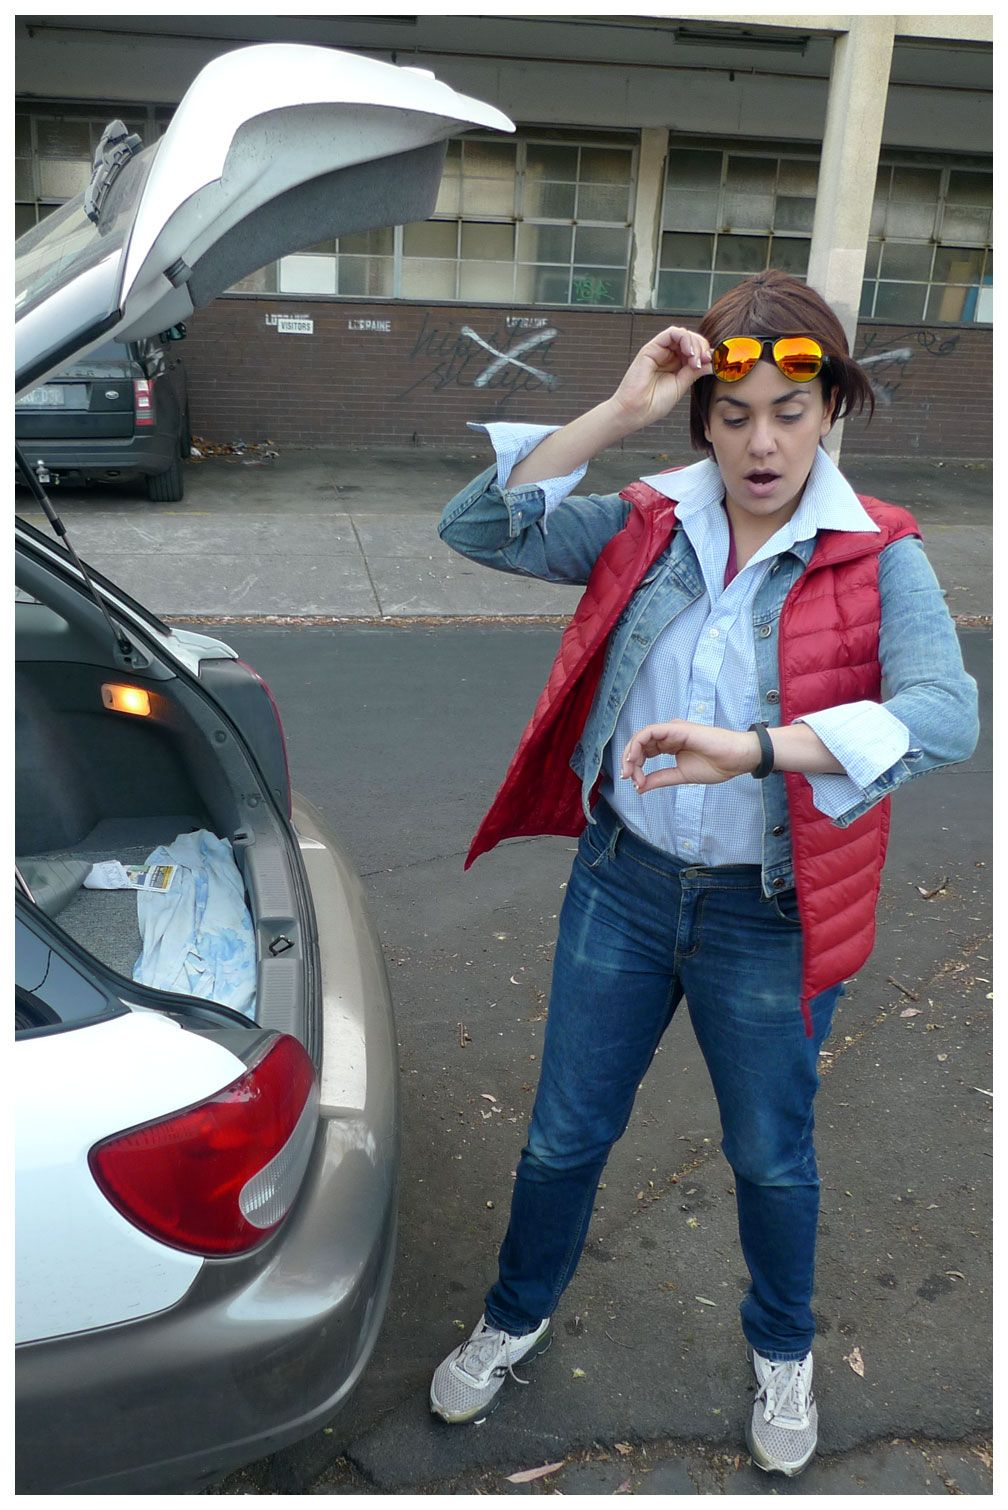 Marty Mcfly Back To The Future Costume Marty Mcfly Mcfly Back To The Future